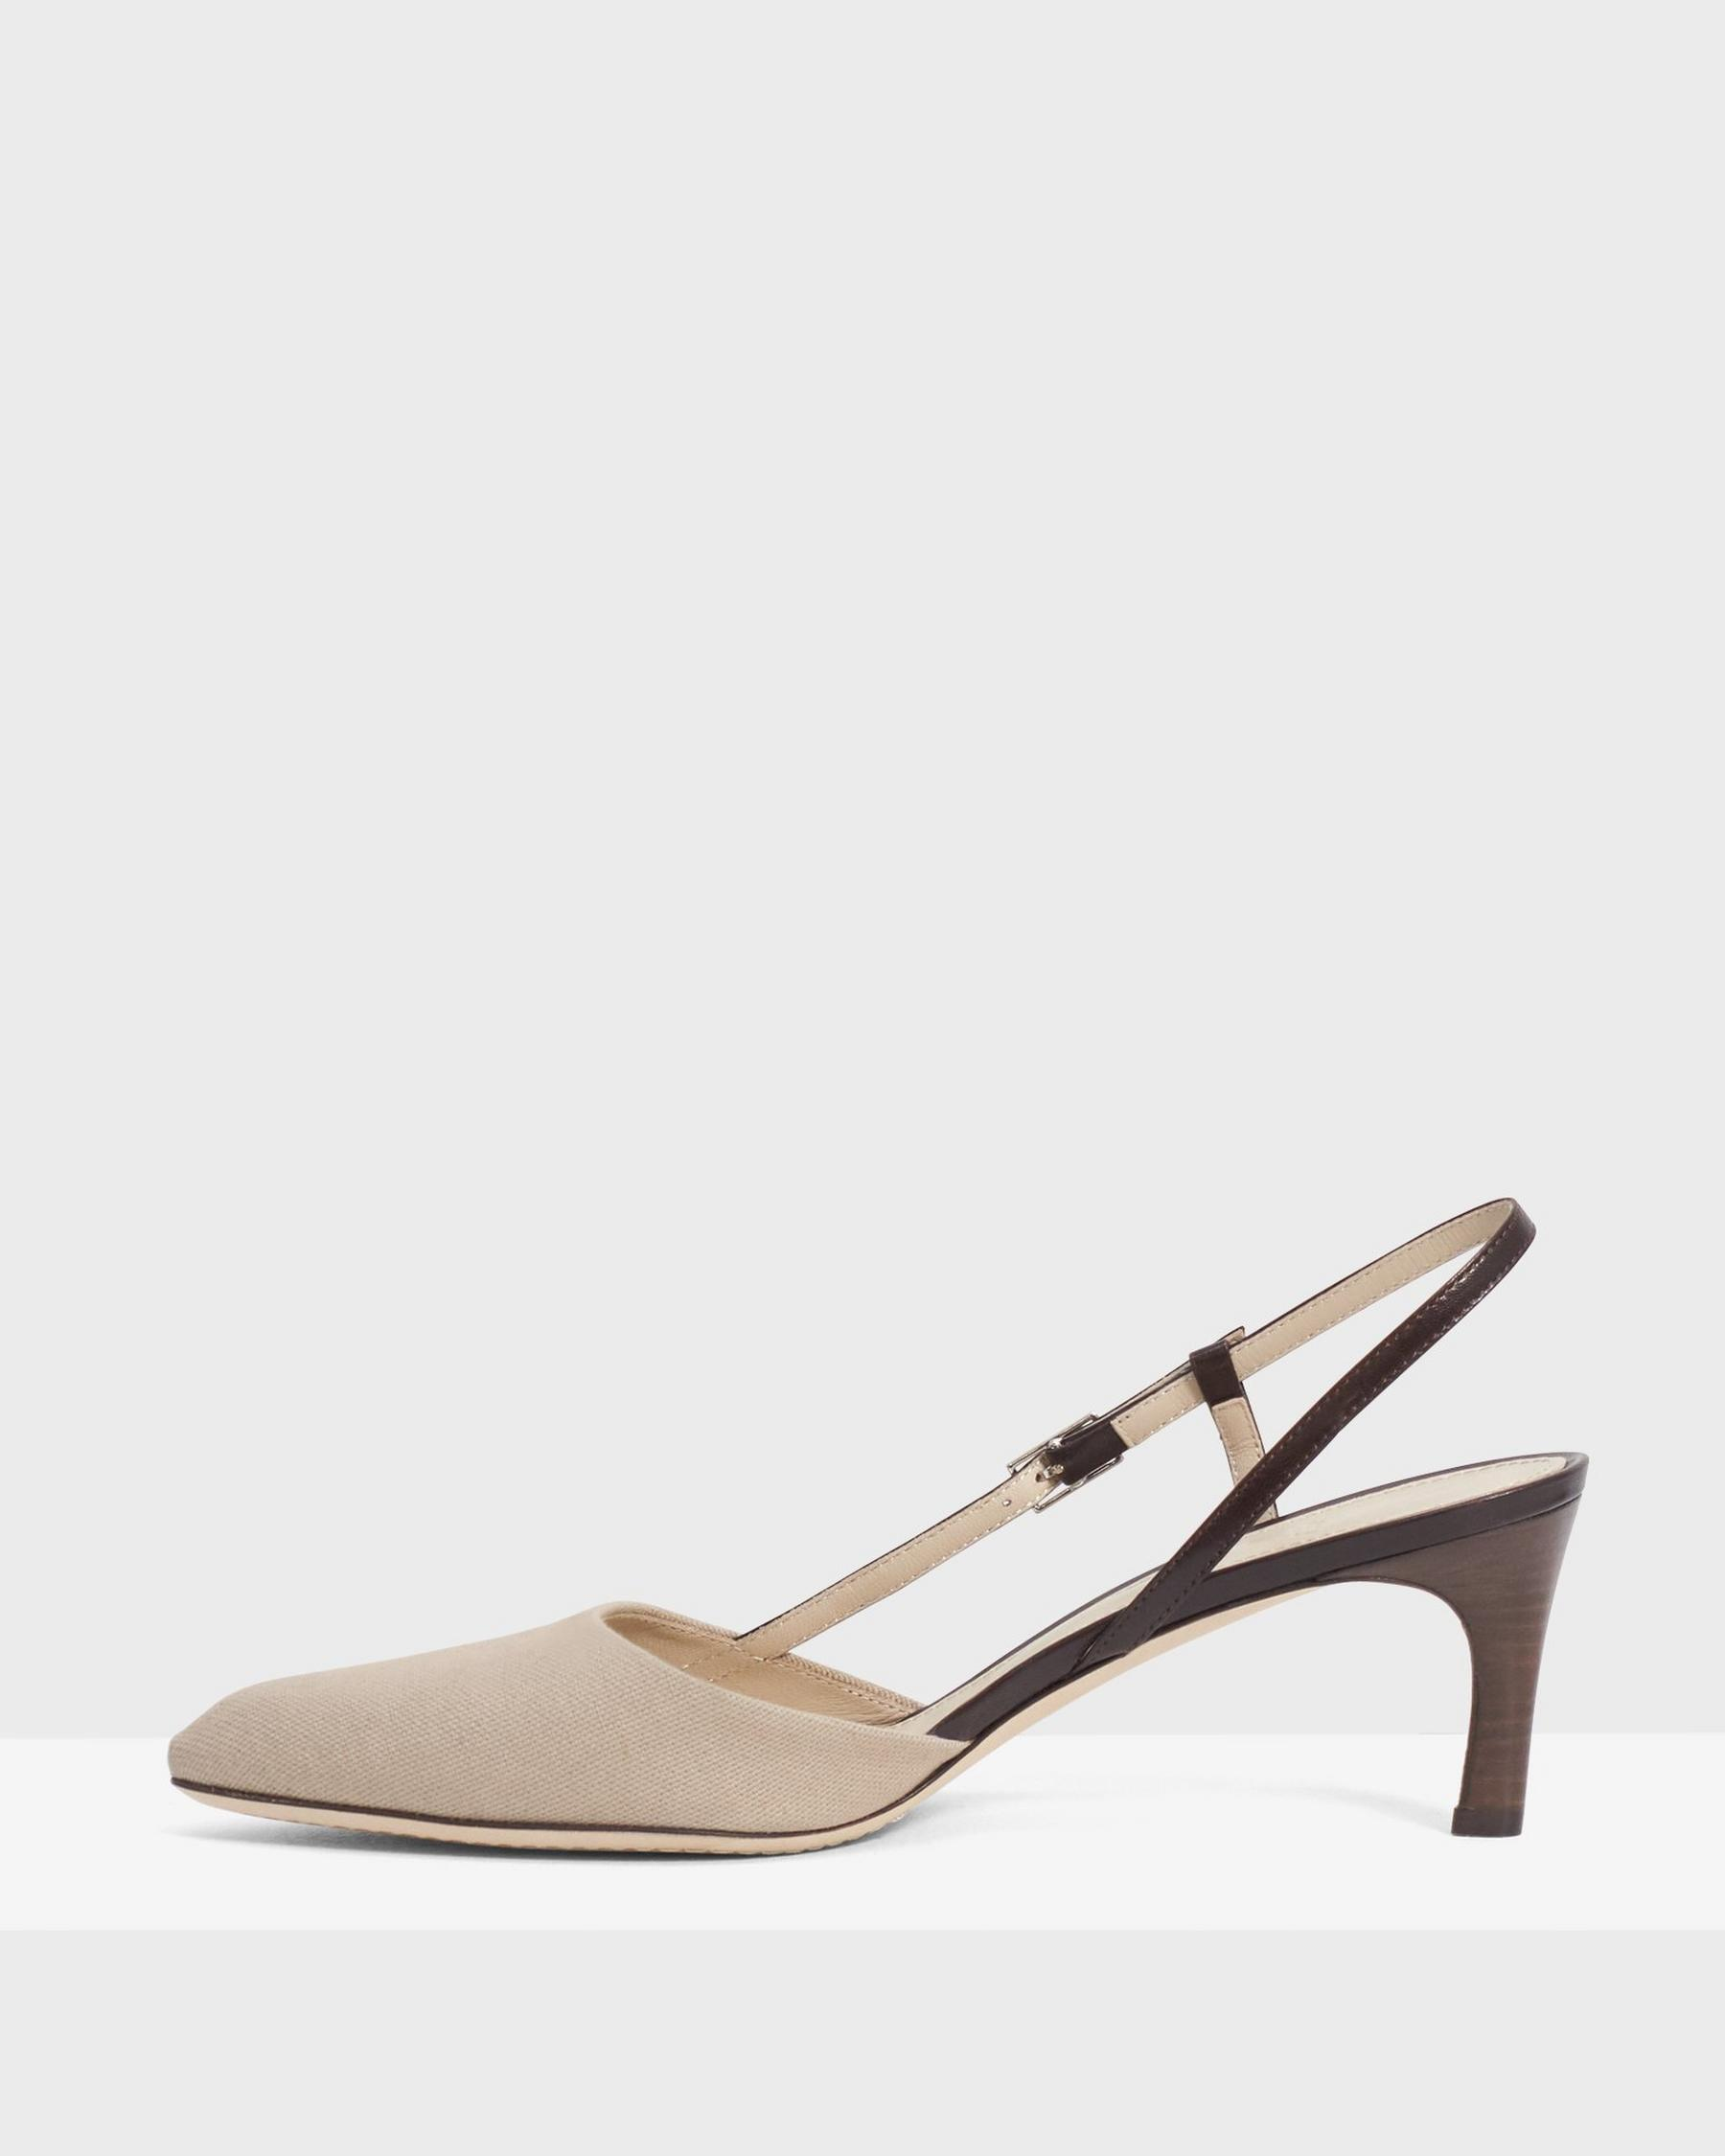 Buckled Mid-Heel Sandal in Cotton Canvas 2